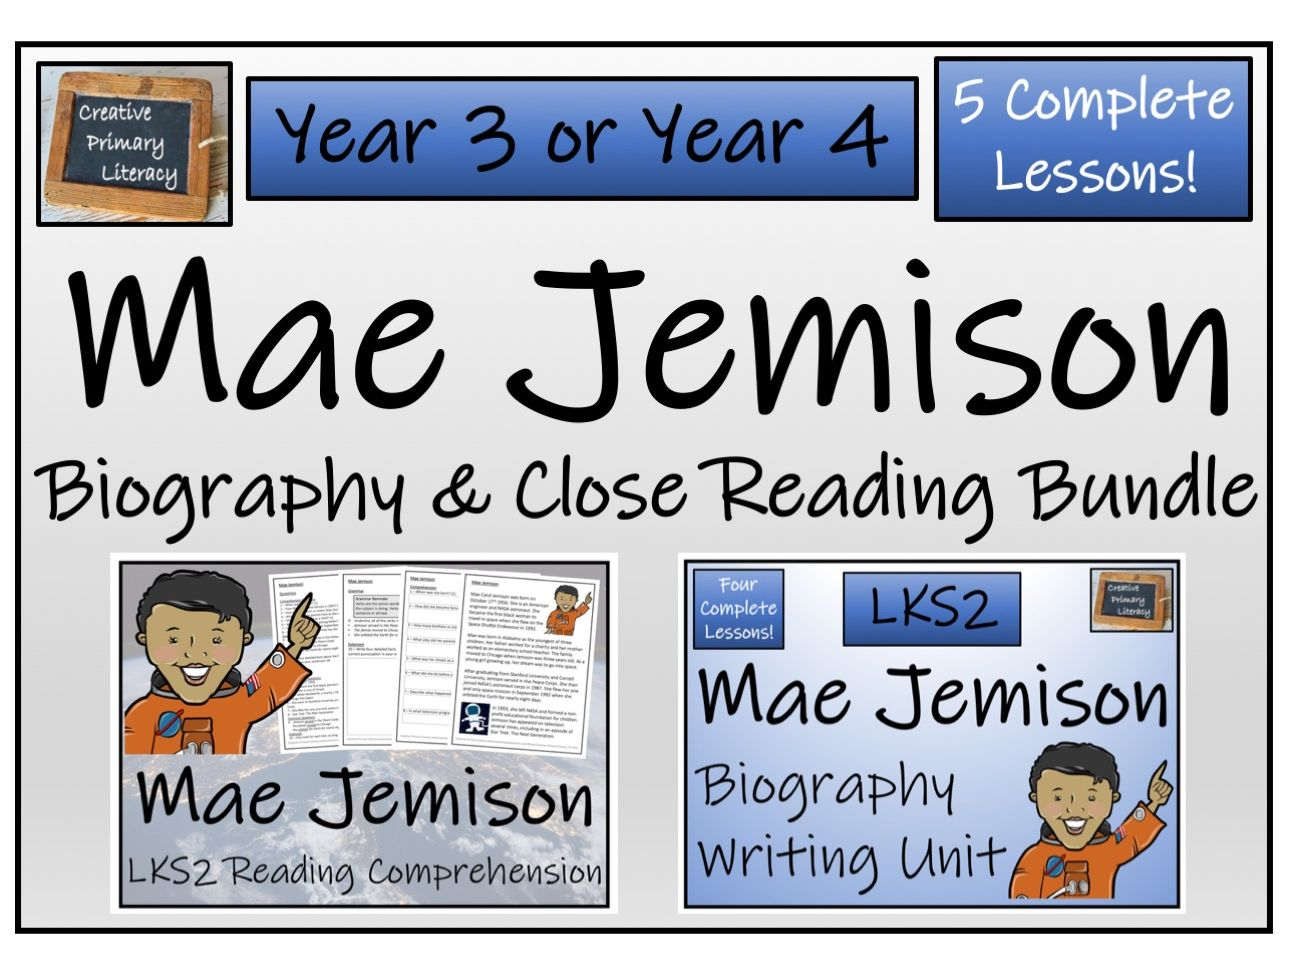 LKS2 Mae Jemison Reading Comprehension & Biography Bundle